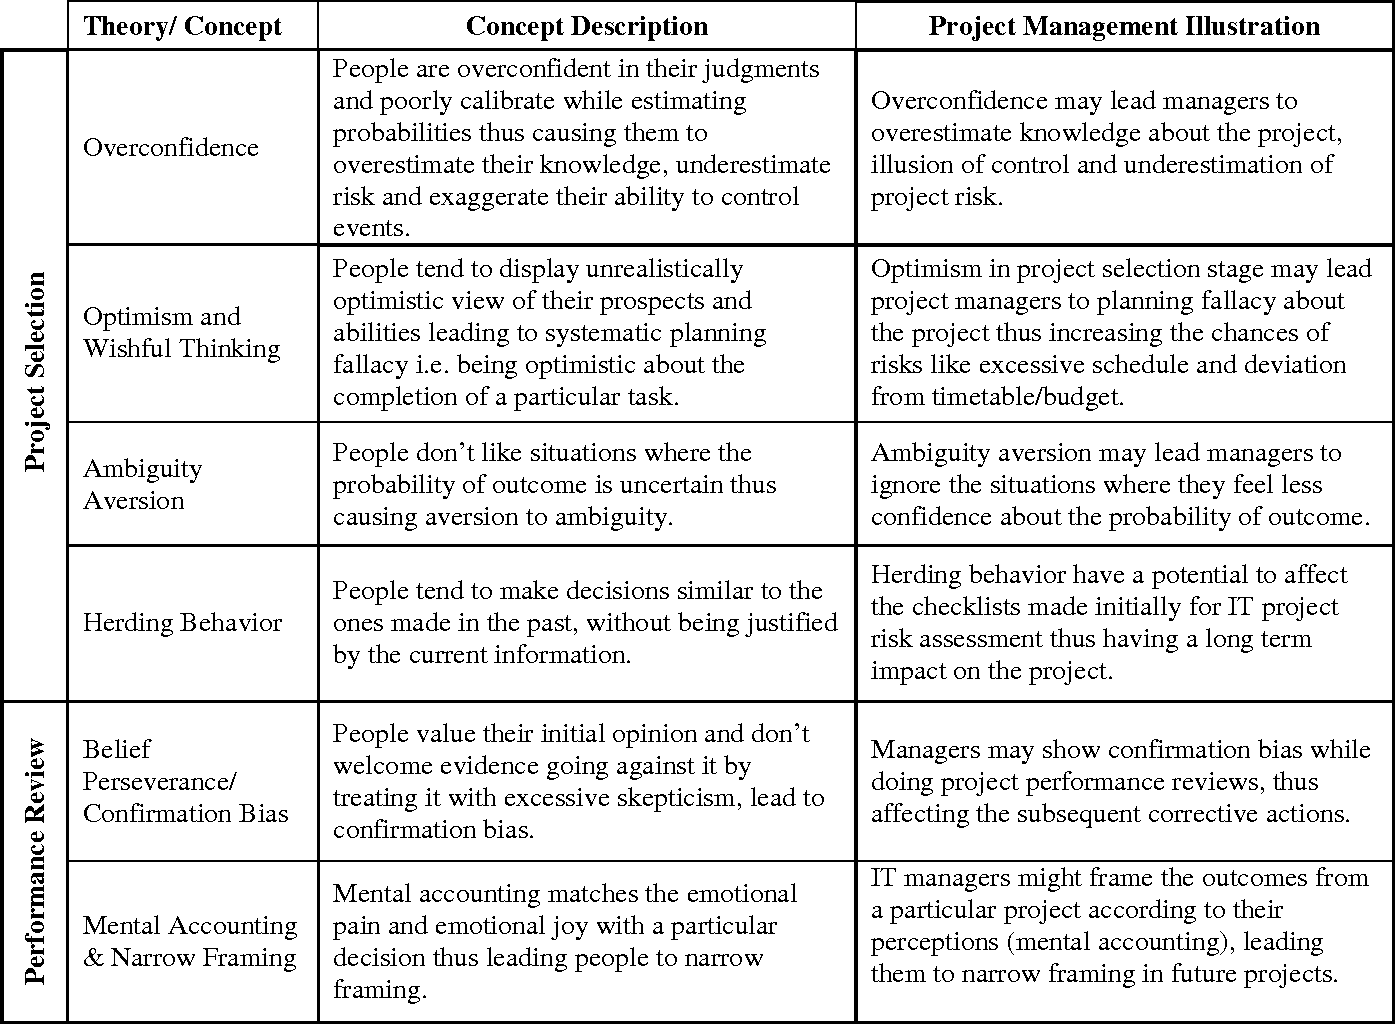 Understanding Managerial Decision Risks in IT Project Management: An ...